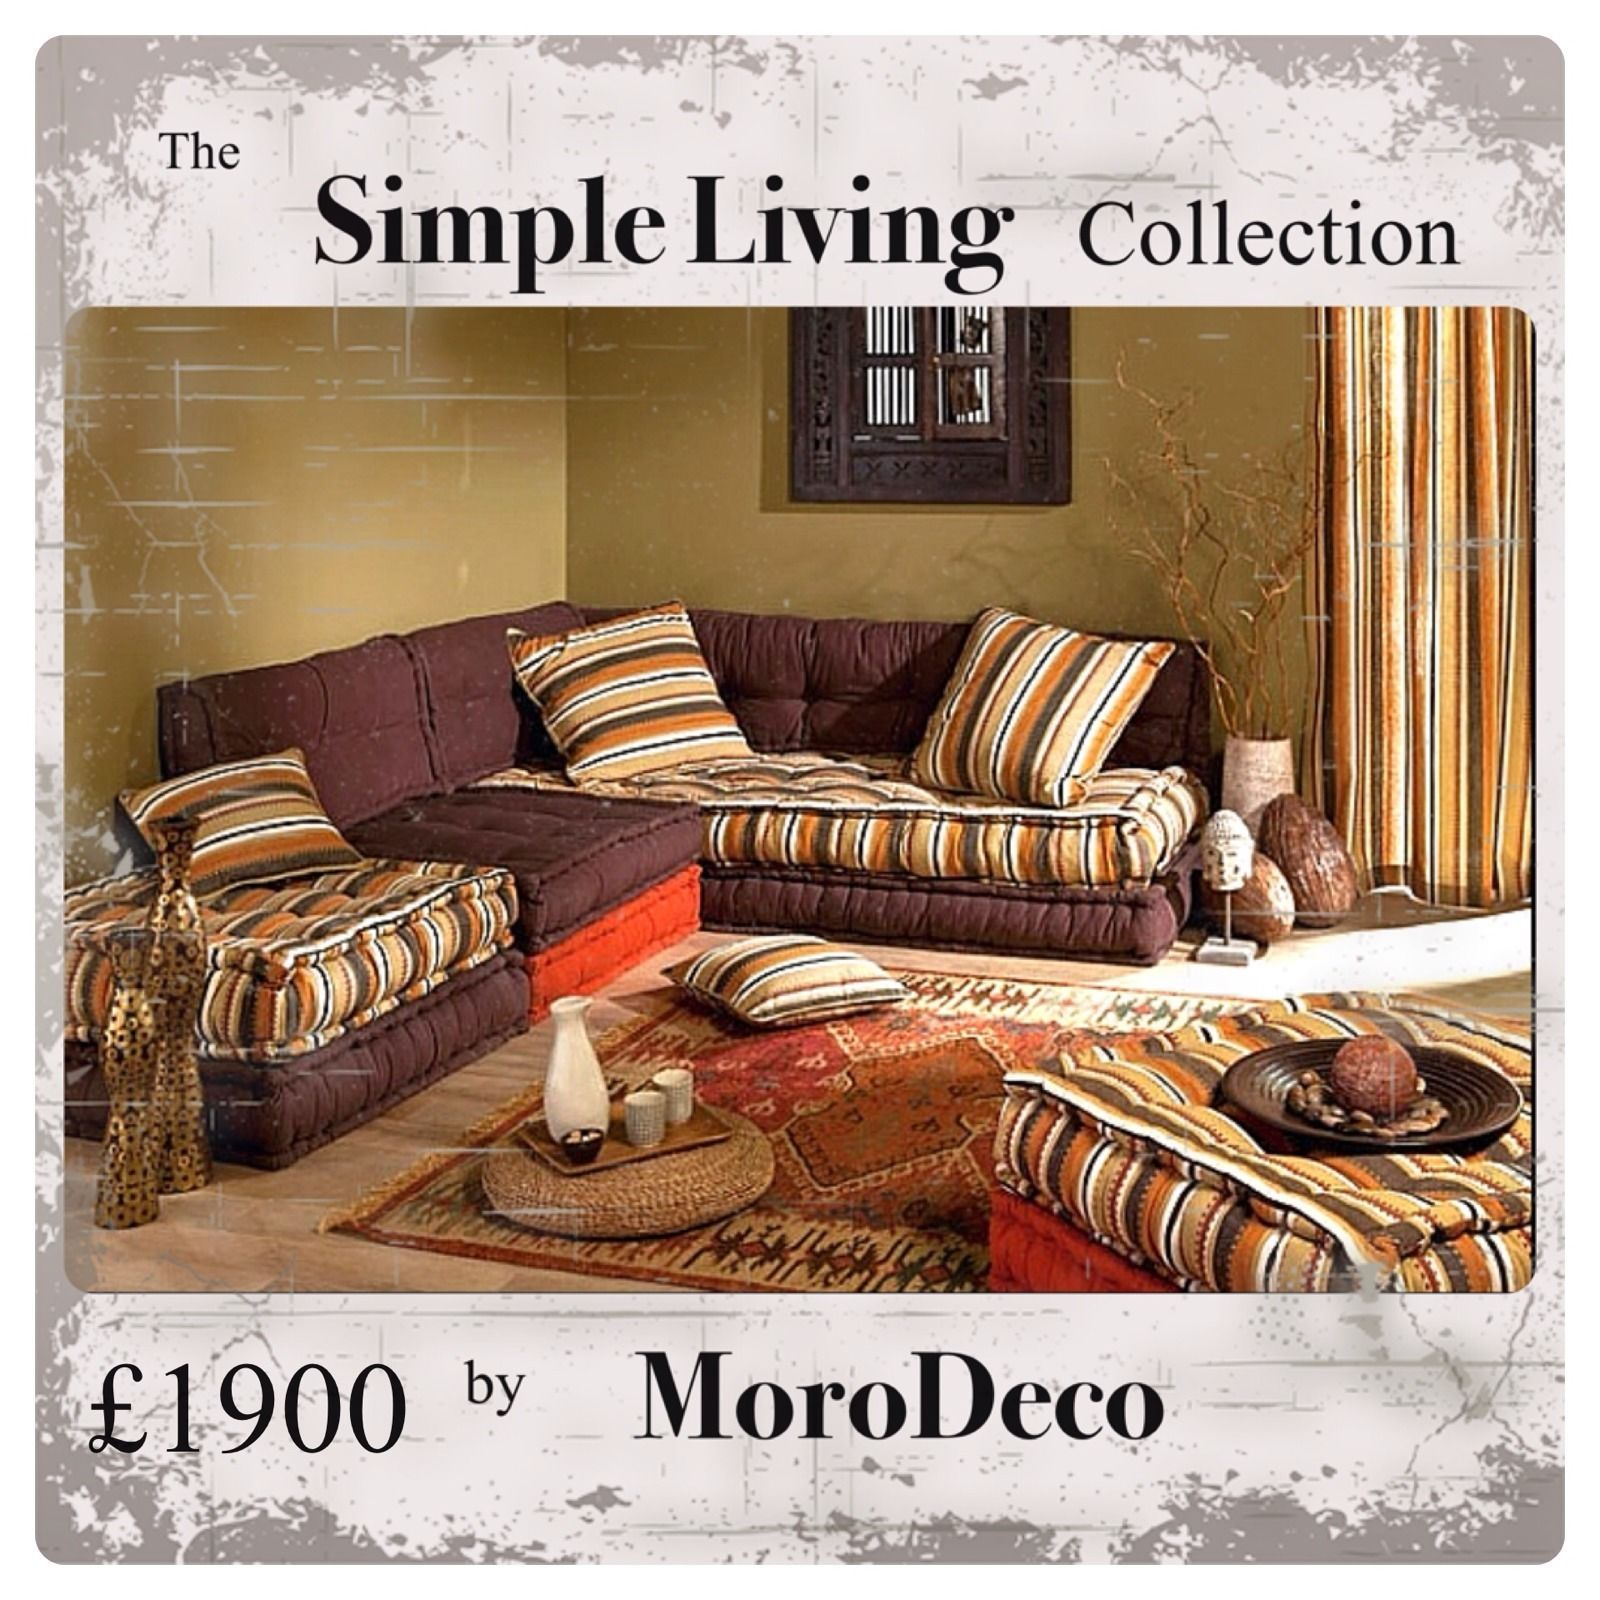 Sofa Workshop Ebay Outlet Details About Bespoke Hand Crafted Moroccan Arabian Moorish Sofa